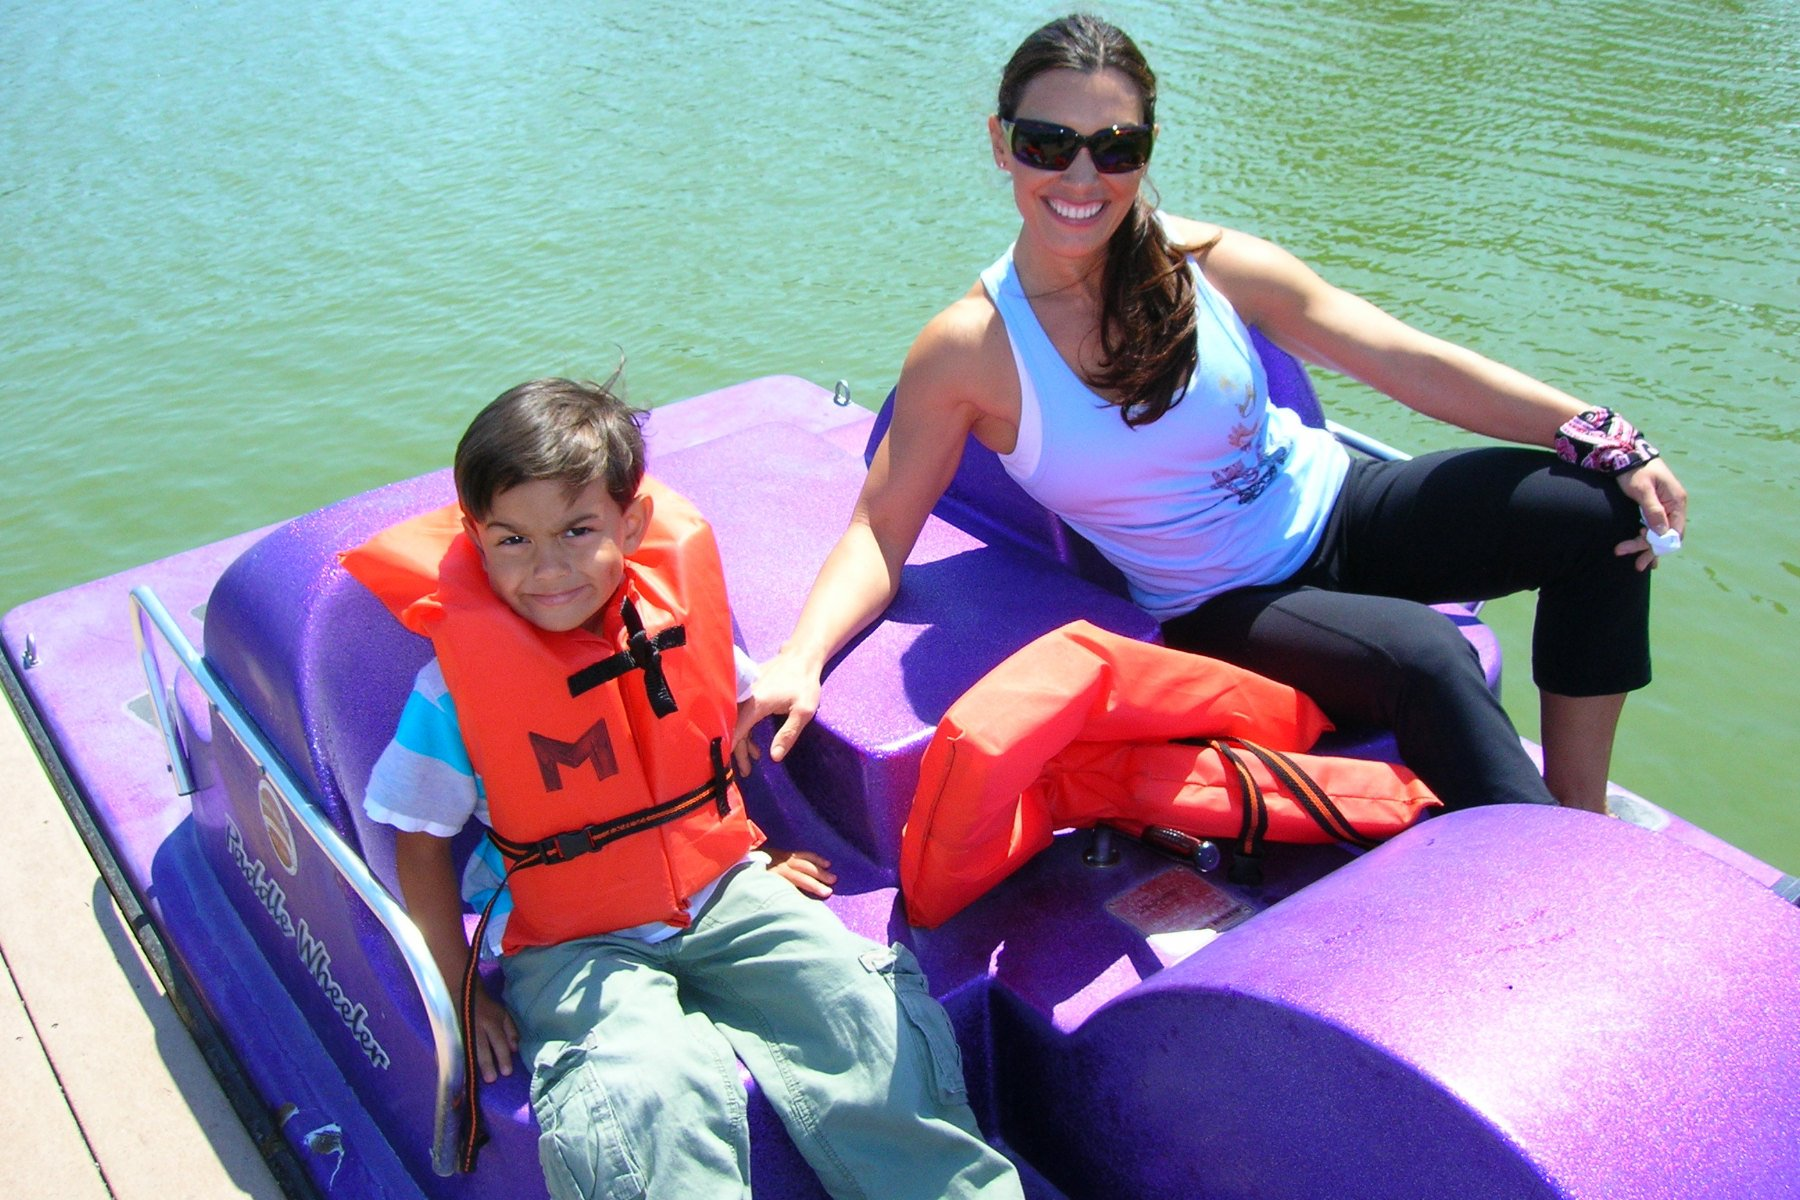 mom-and-ld-paddle-boats10-24-2011